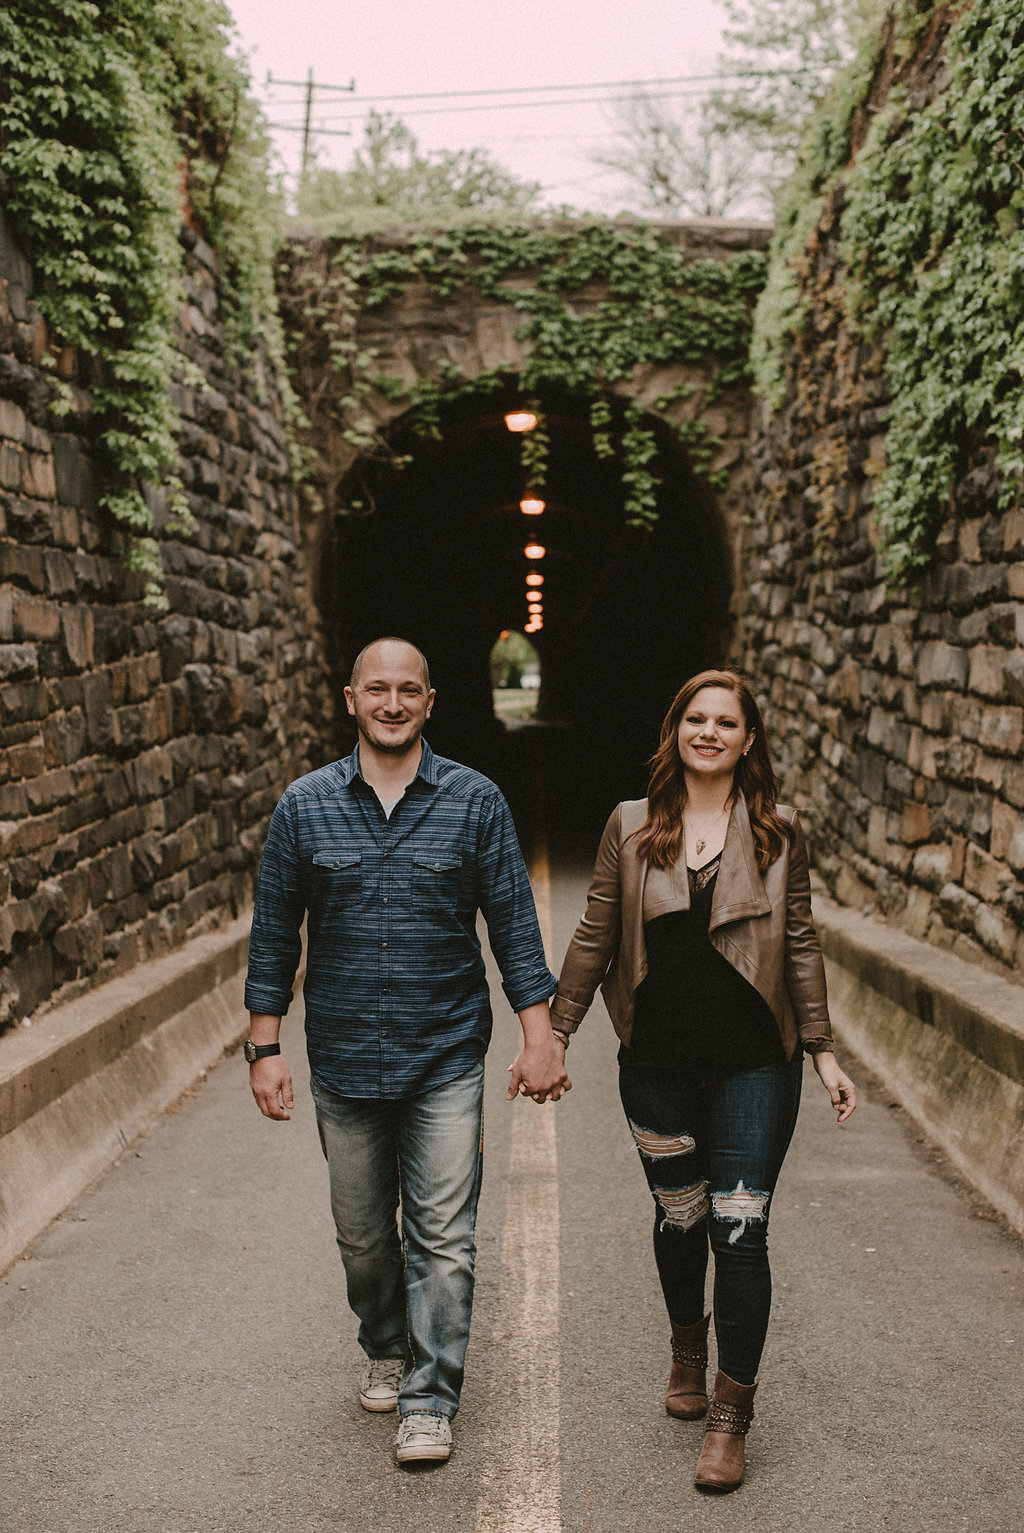 Man and woman walking through tunnel